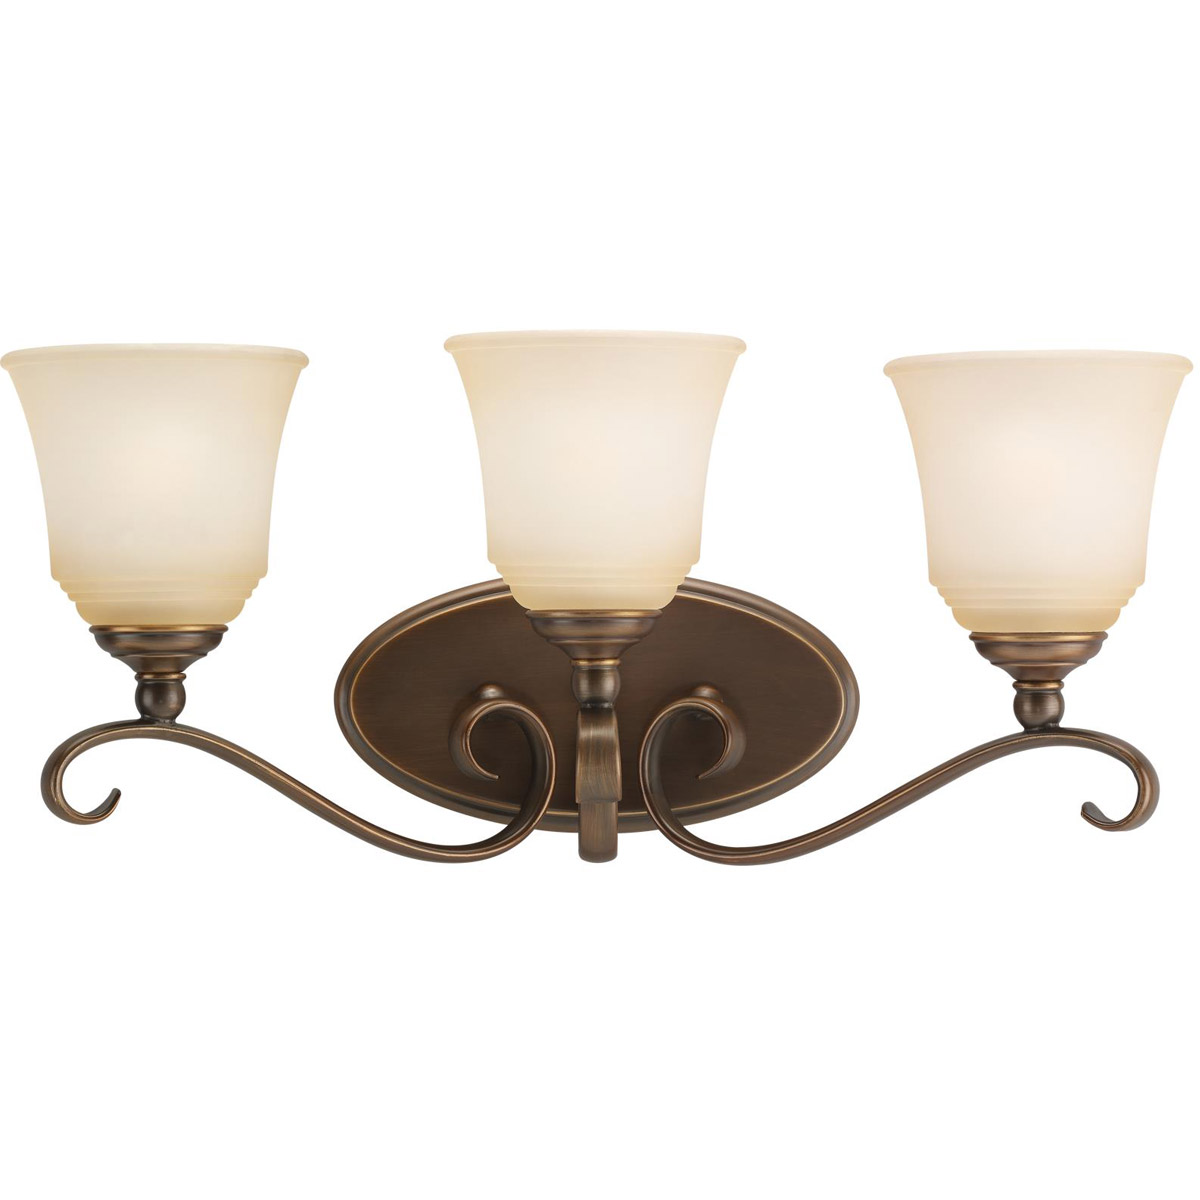 Sea Gull 44381-829 Parkview 3 Light 23 inch Russet Bronze Bath Vanity Wall Light in Ginger Glass photo